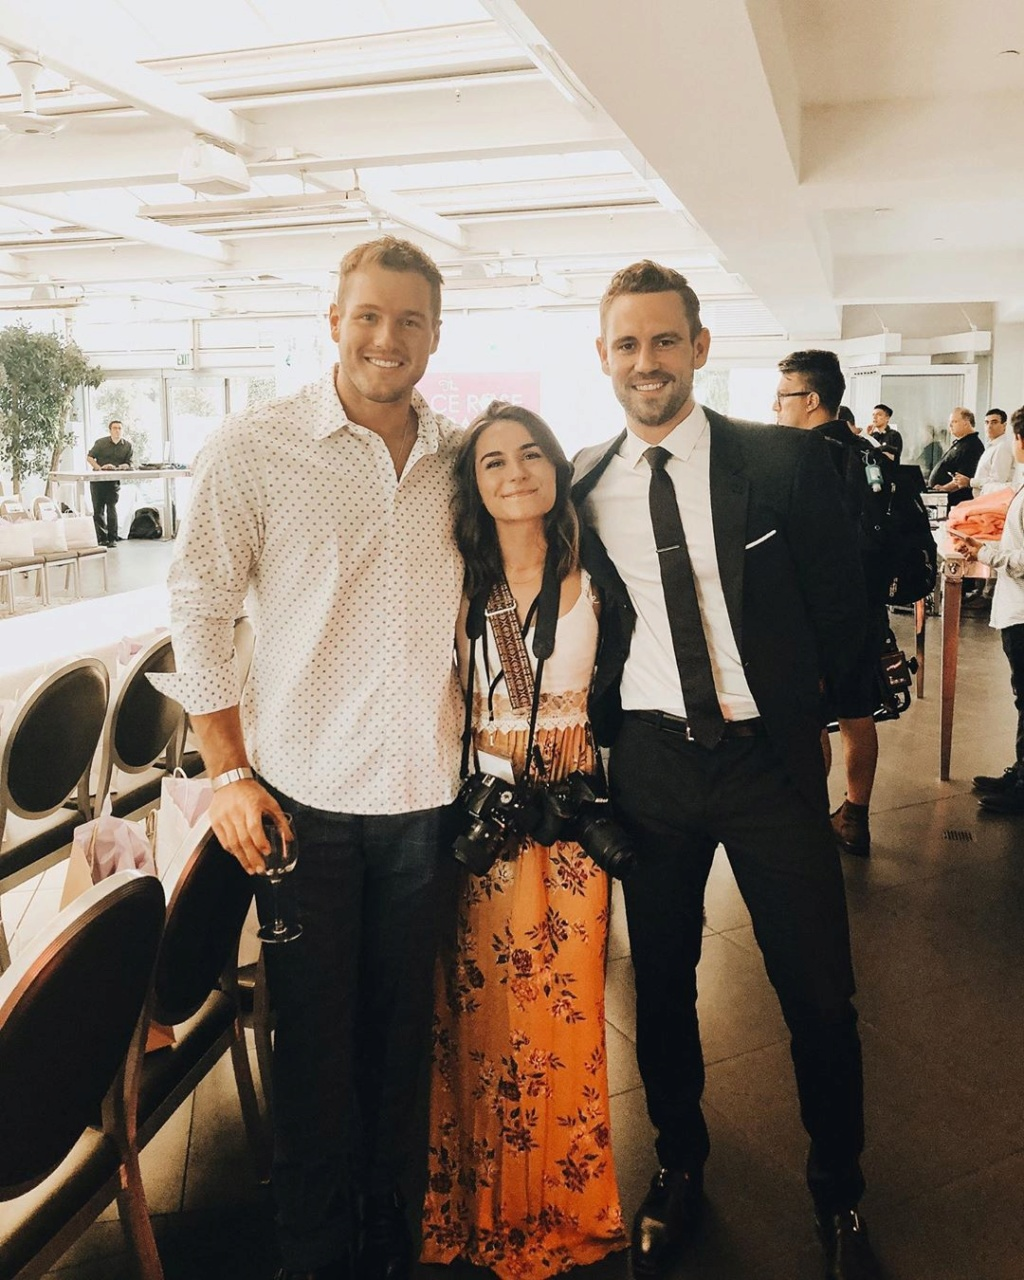 Nick Viall - Bachelor 21 - FAN Forum - Discussion #27 - Page 61 68767112